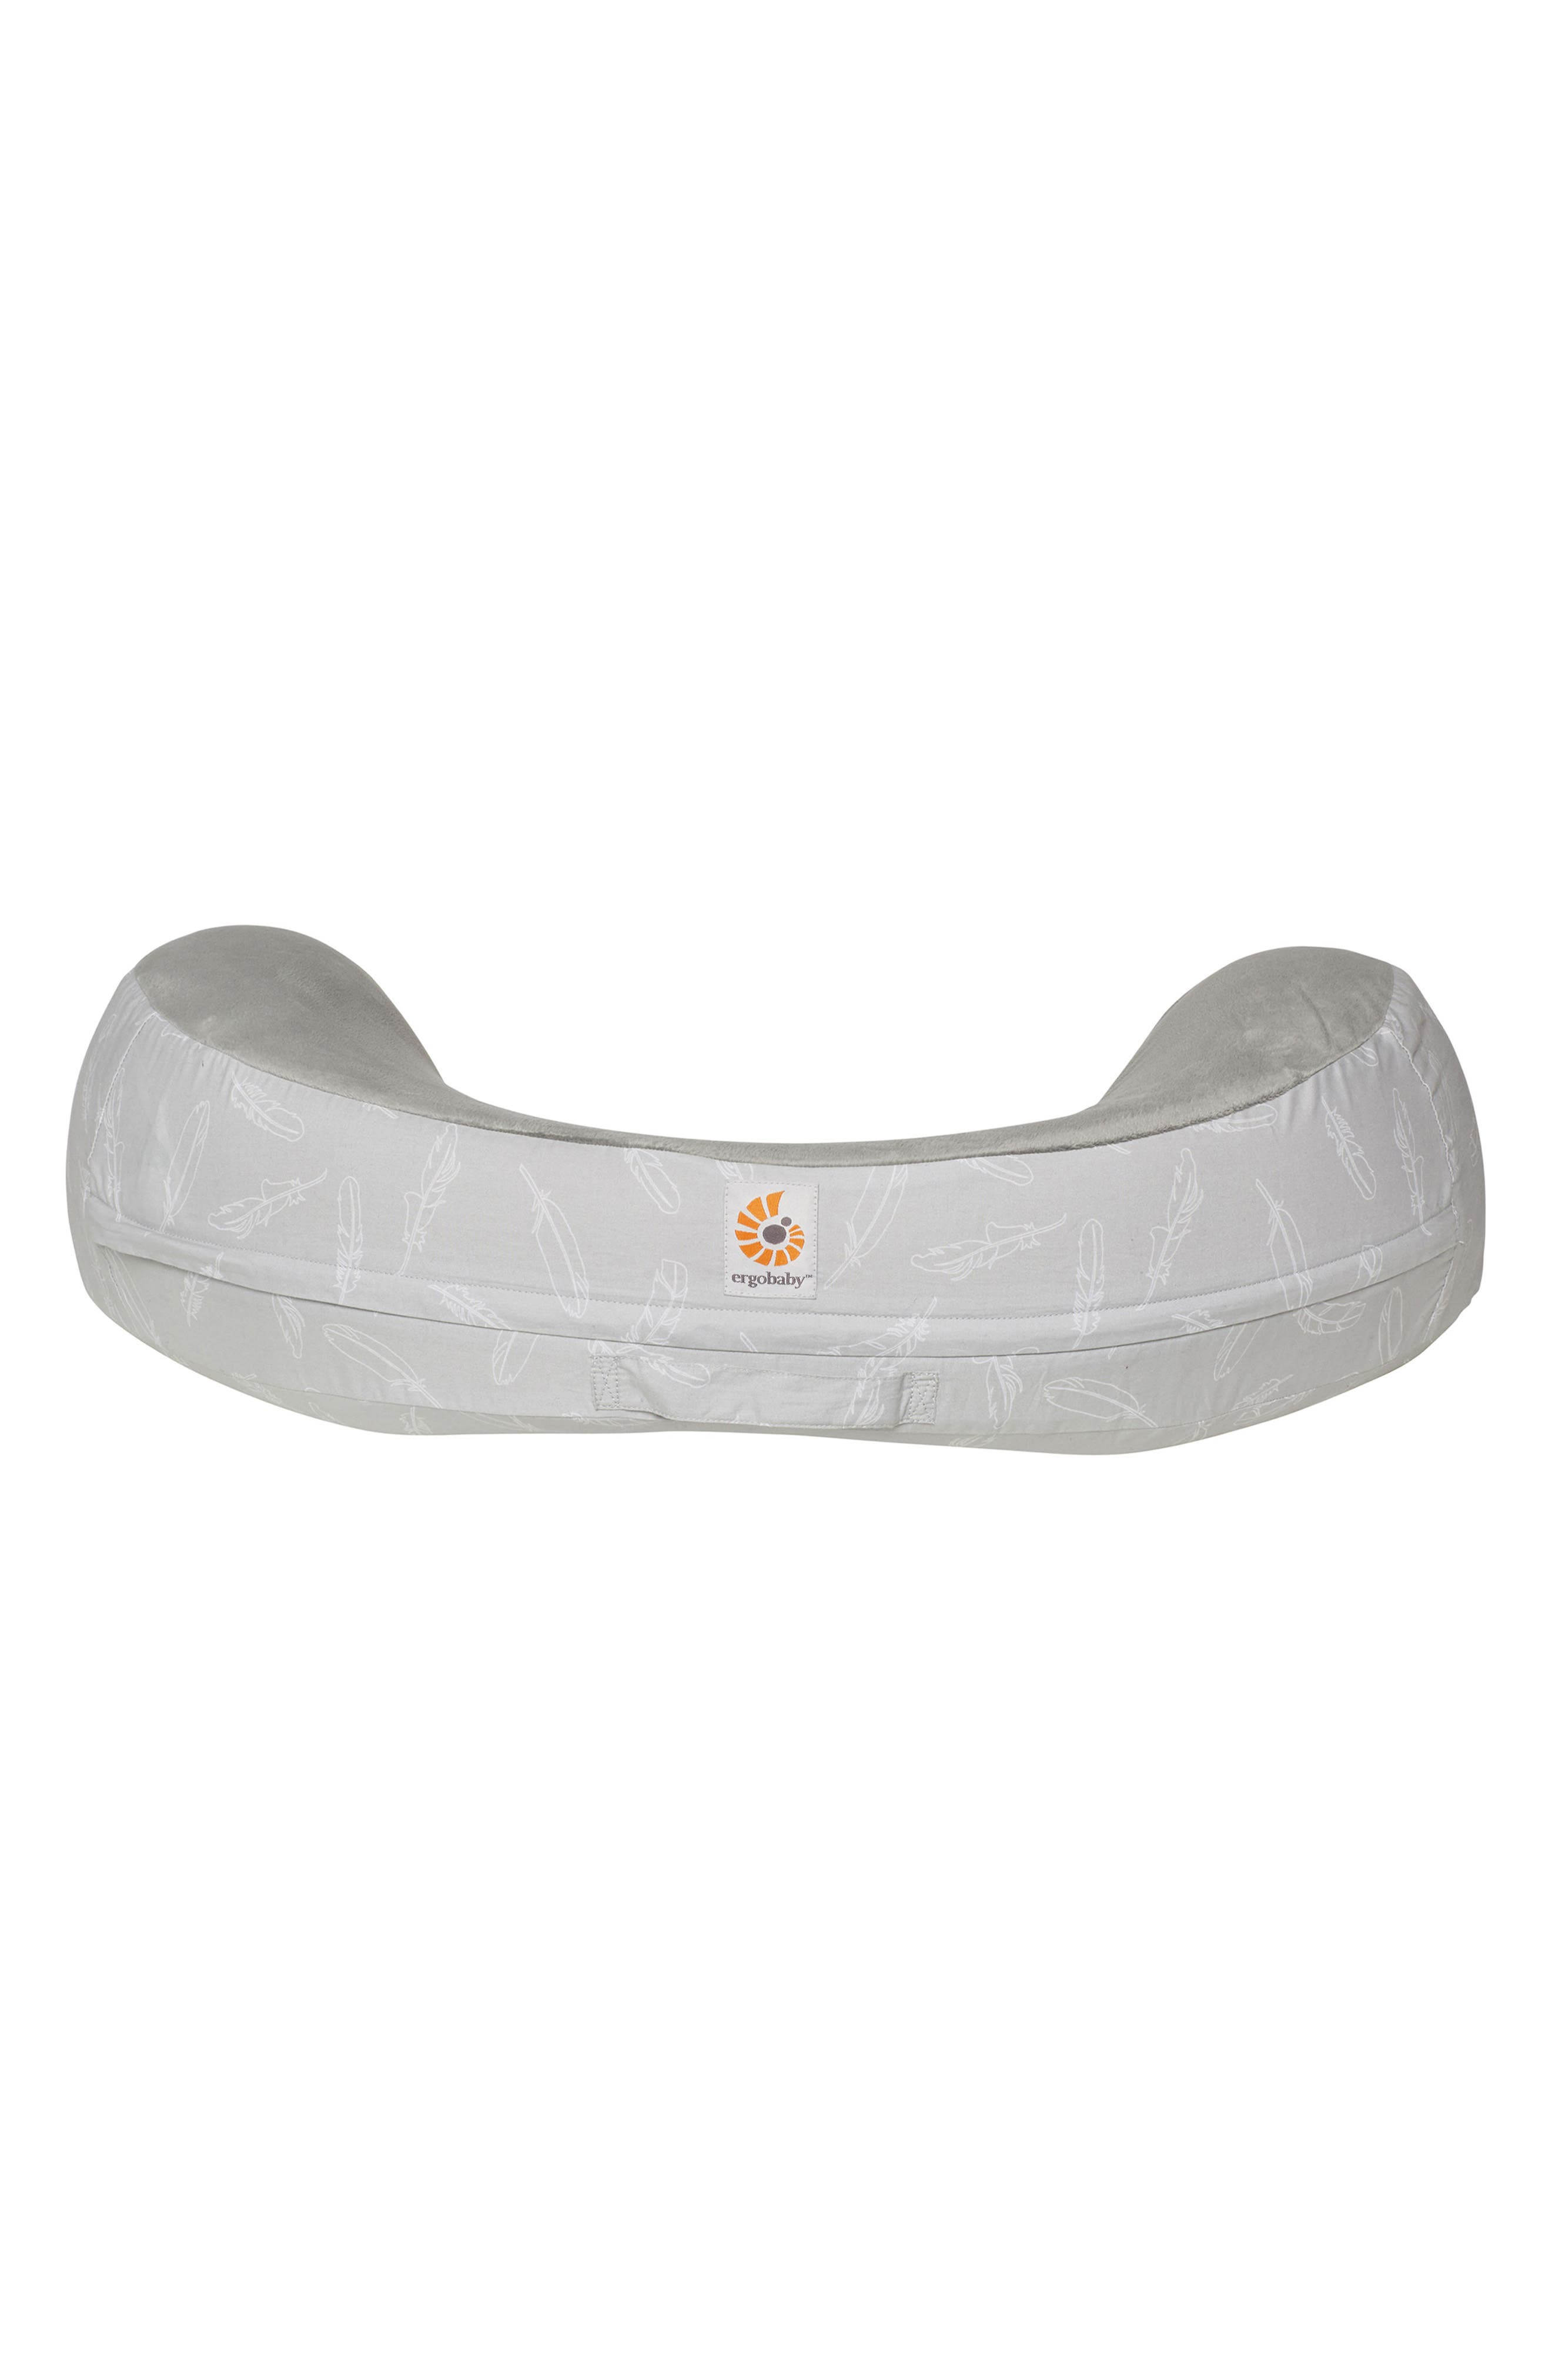 Natural Curve Nursing Pillow,                             Main thumbnail 1, color,                             020